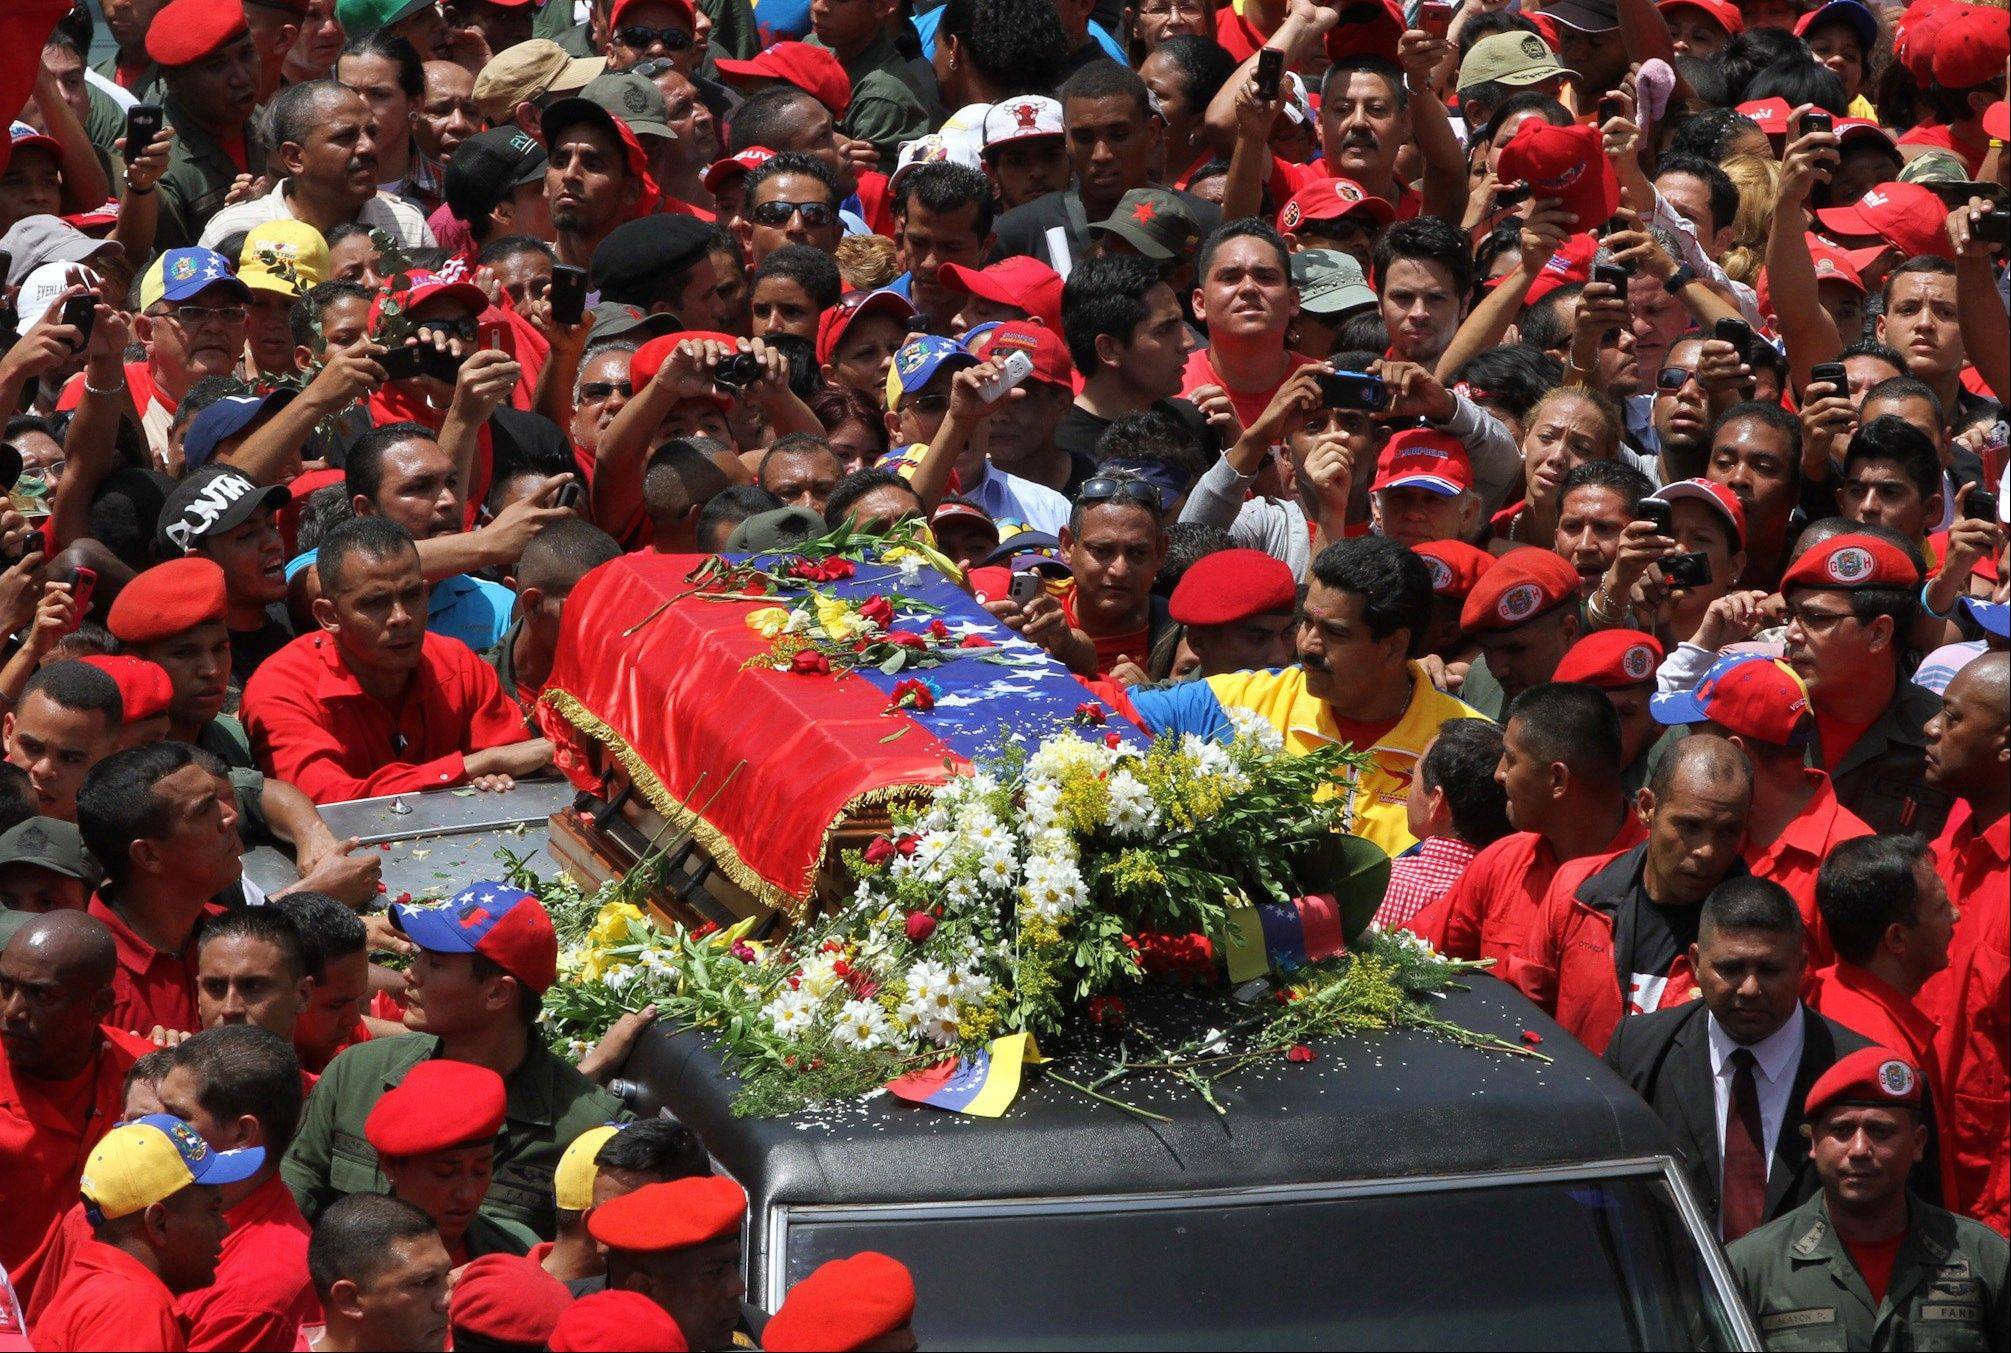 Venezuela's Vice President Nicolas Maduro walks alongside the flag-draped coffin carrying the remains of the late President Hugo Chavez, along with other supporters, as it is paraded from the hospital where he died Tuesday to a military academy where his body will lie in state in Caracas, Venezuela, Wednesday.